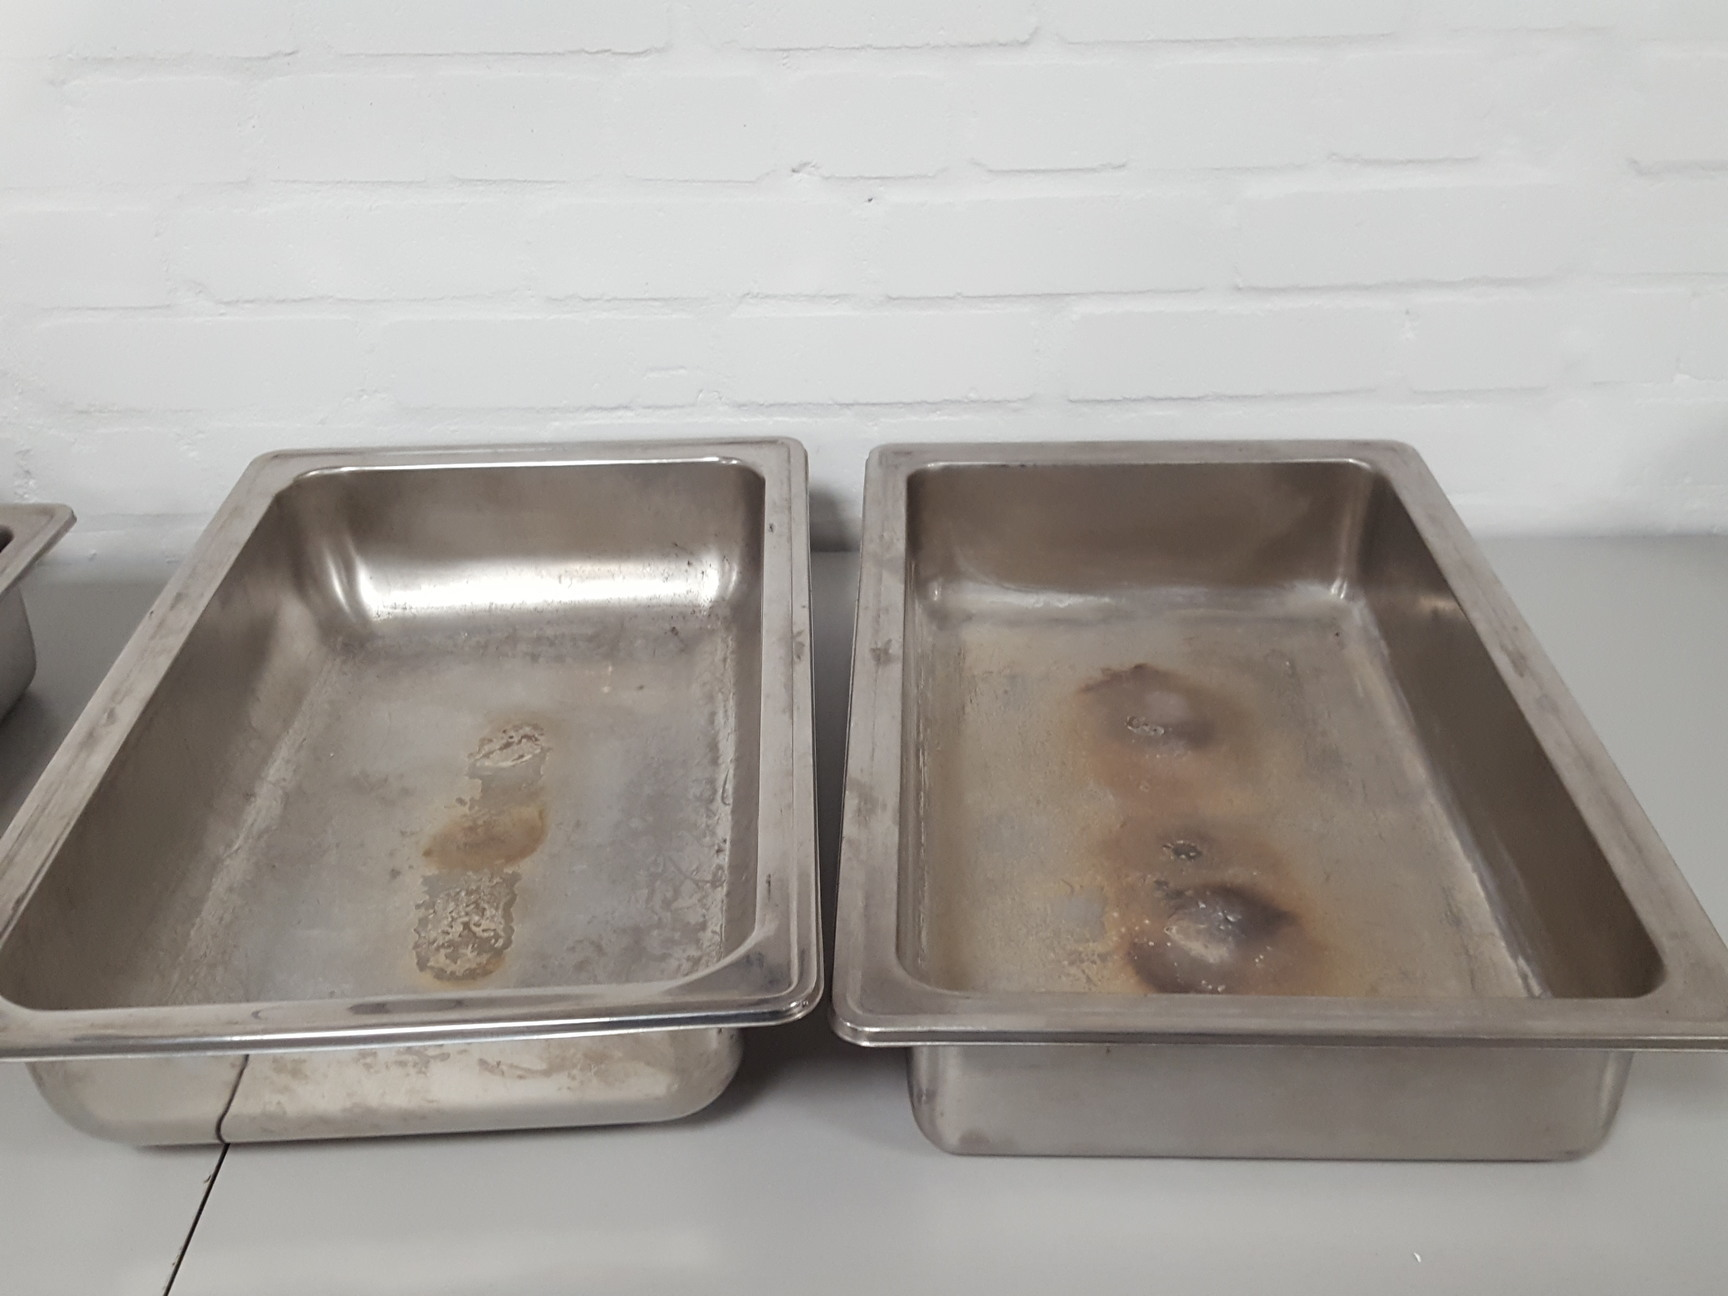 Lot of 3 Stainless Steel Banqueting Trays With Lids Hot Buffet